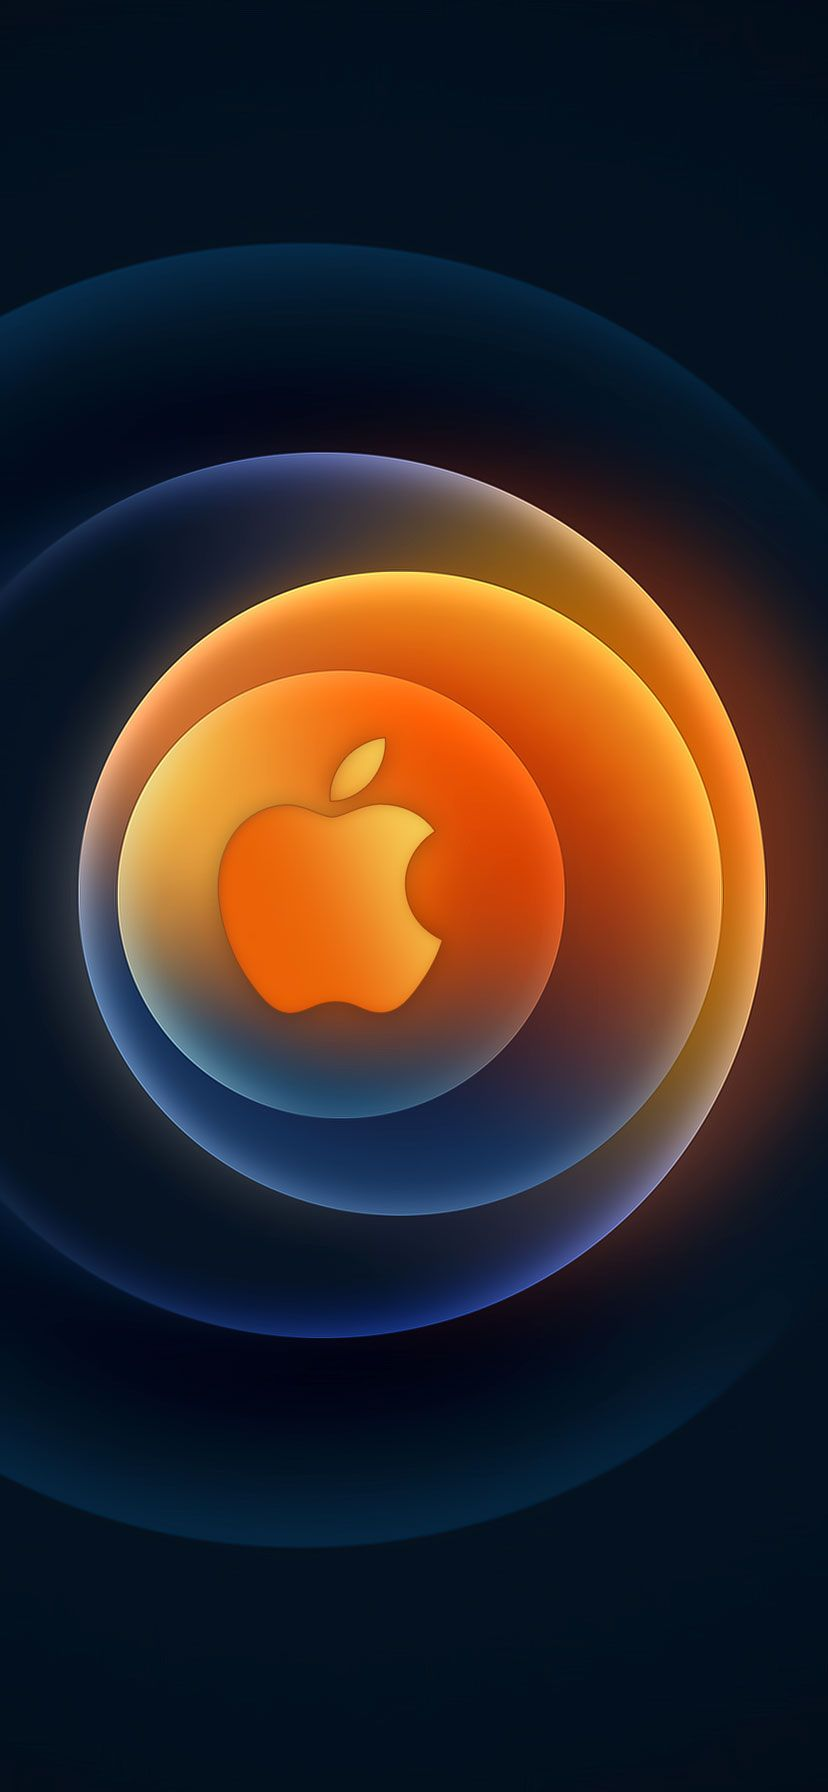 You Can Now Download Apple October 13 High Speed Event Wallpapers Ytechb Android Updates Apple Wallpaper Apple Logo Wallpaper Iphone Apple Wallpaper Iphone